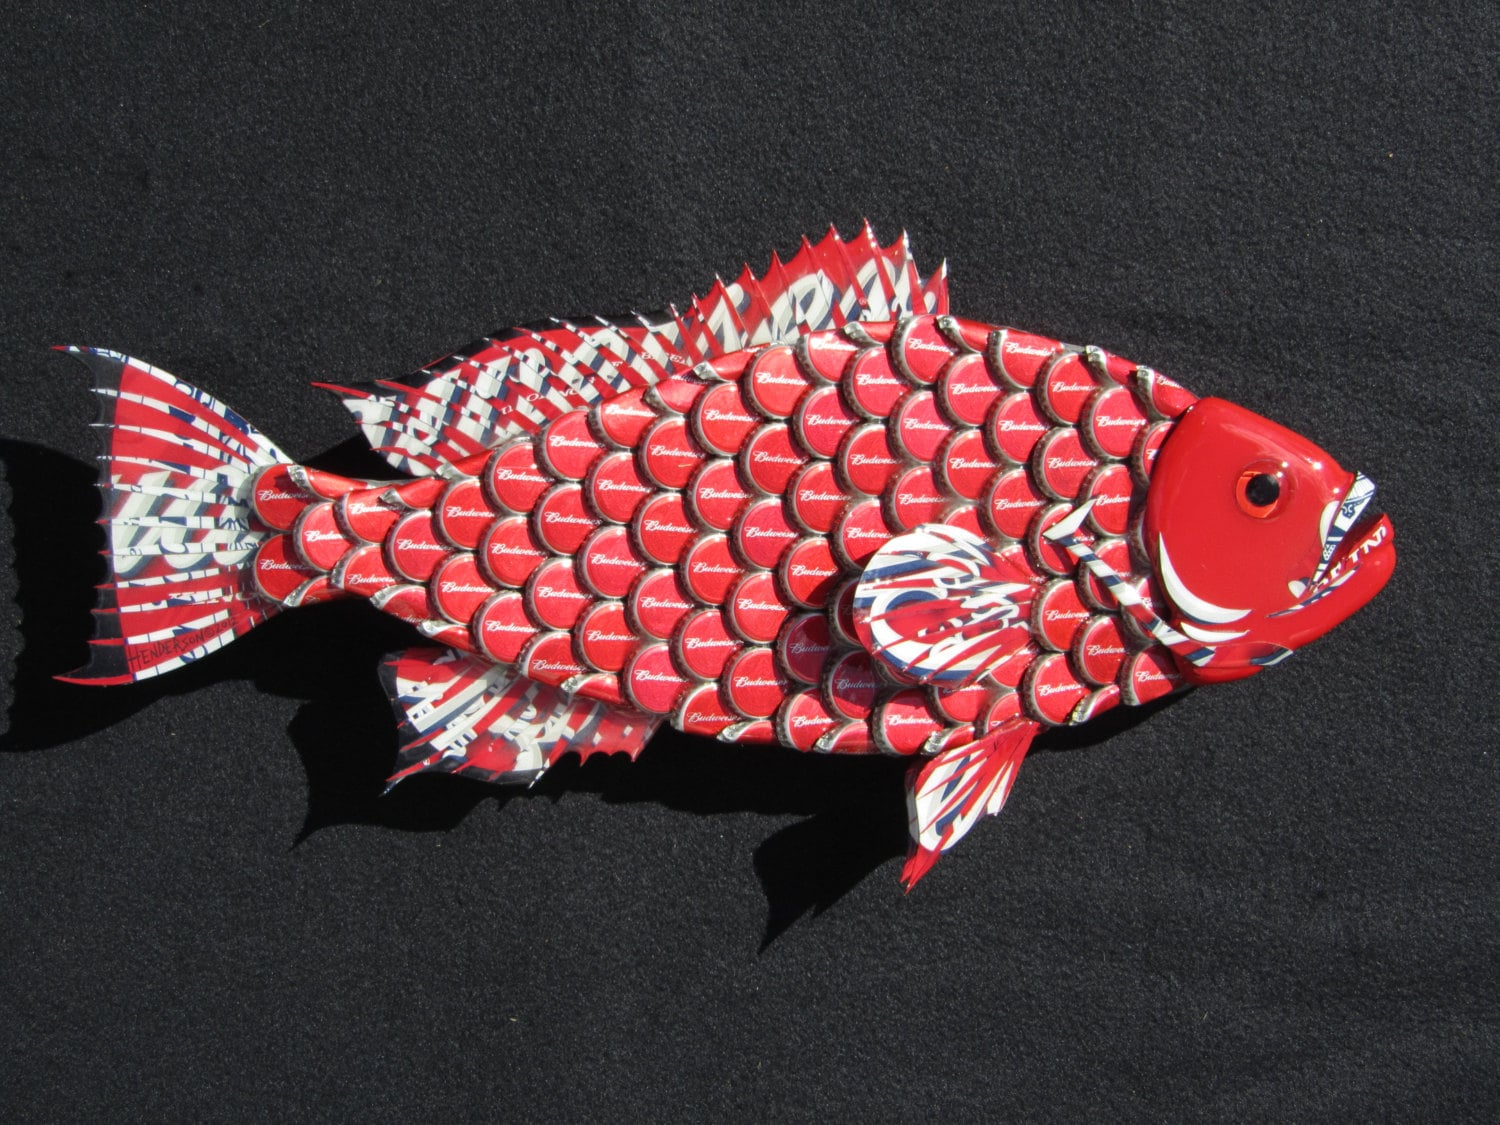 Bottle Cap Wall Art metal bottle cap fish wall art small budweiser bottlecap red